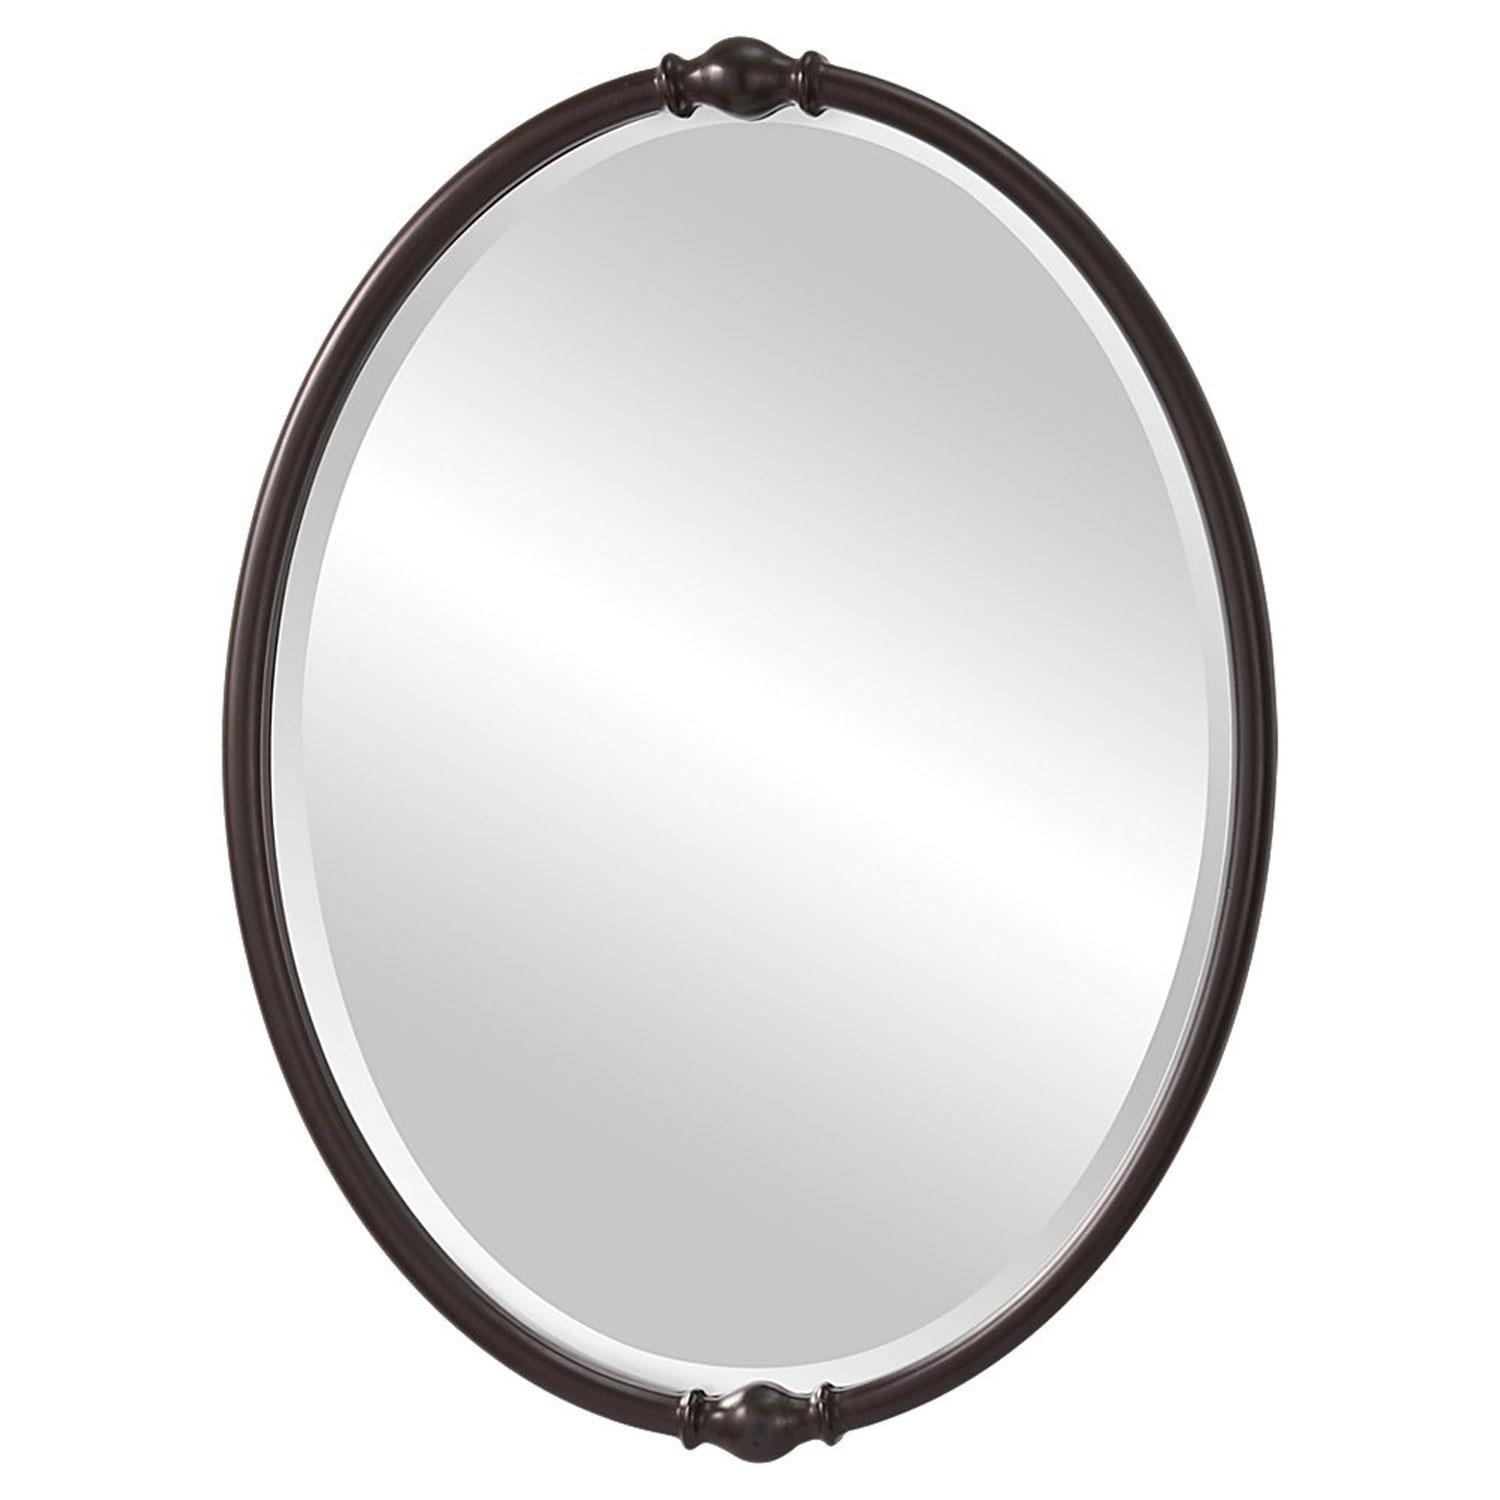 Jackie Oil Rubbed Bronze Mirror Feiss Wall Mirror Mirrors Home Decor Inside Bronze Wall Mirror (Image 7 of 20)